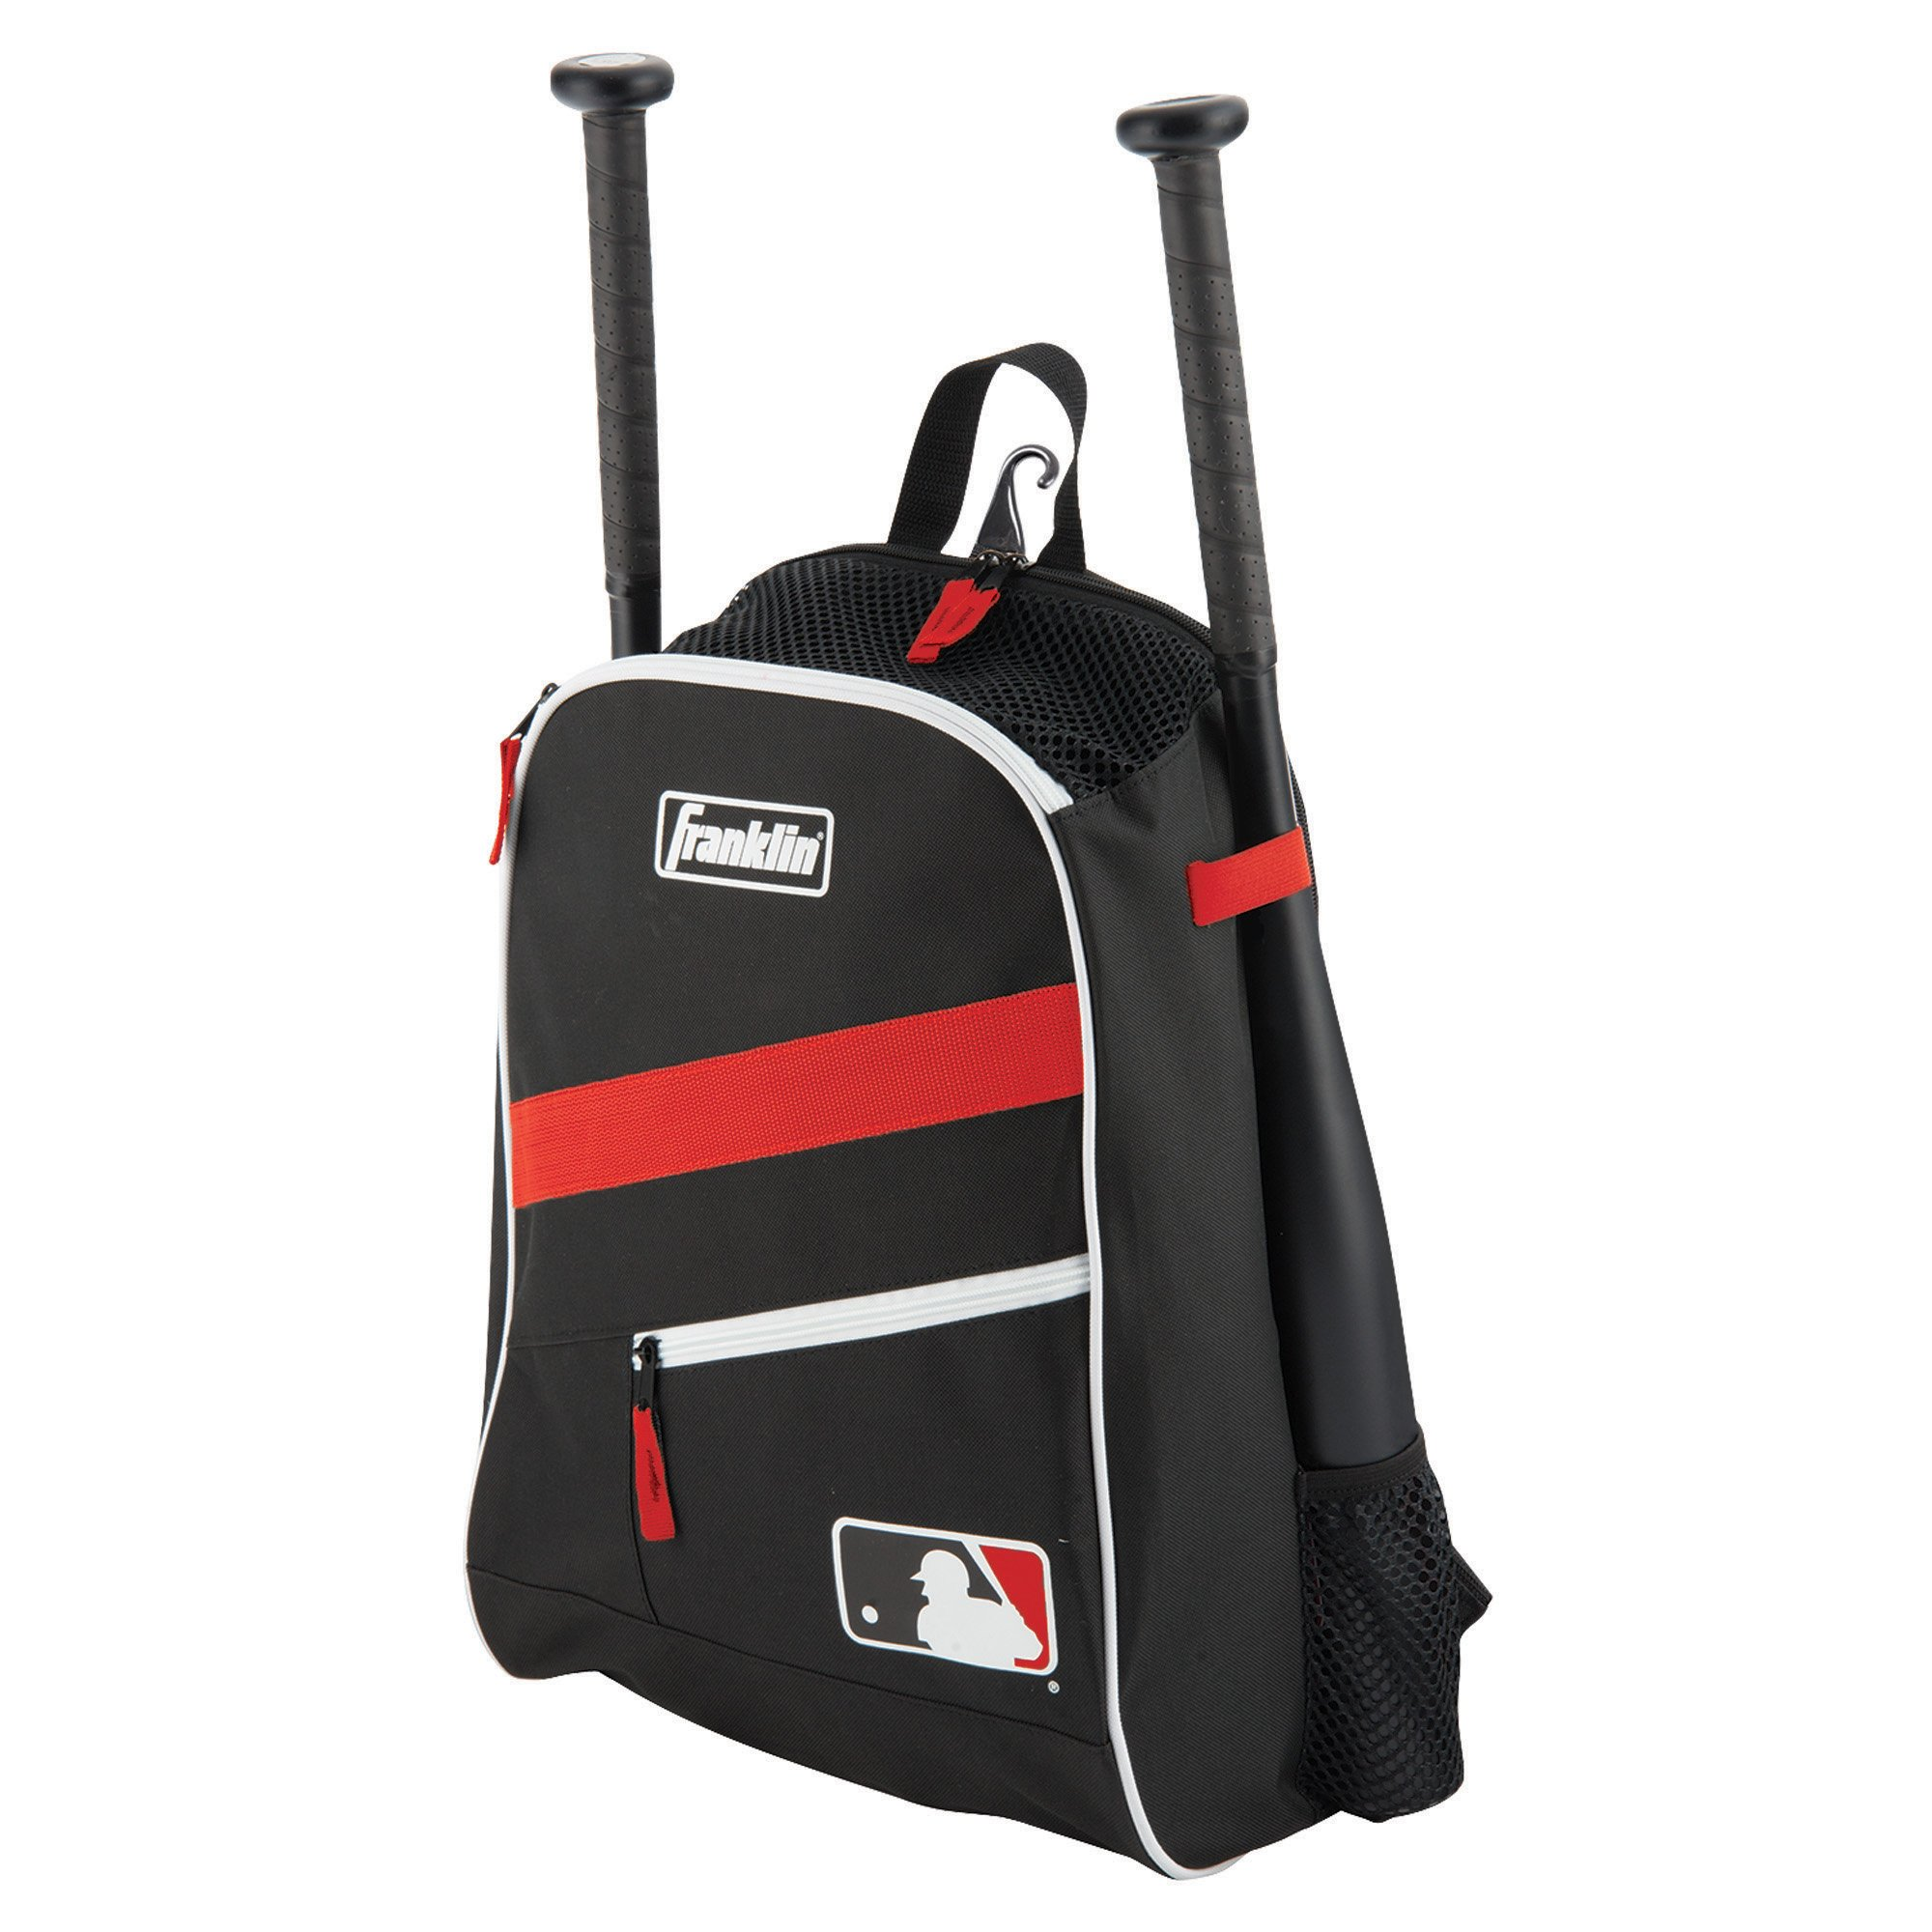 Franklin Sports MLB Batpack Bag - Youth Baseball, Softball and Teeball Bag - Equipment Bag for Sports - Bag Holds Bats (2) and Includes Fence Hook - Black/Red/White by Franklin Sports